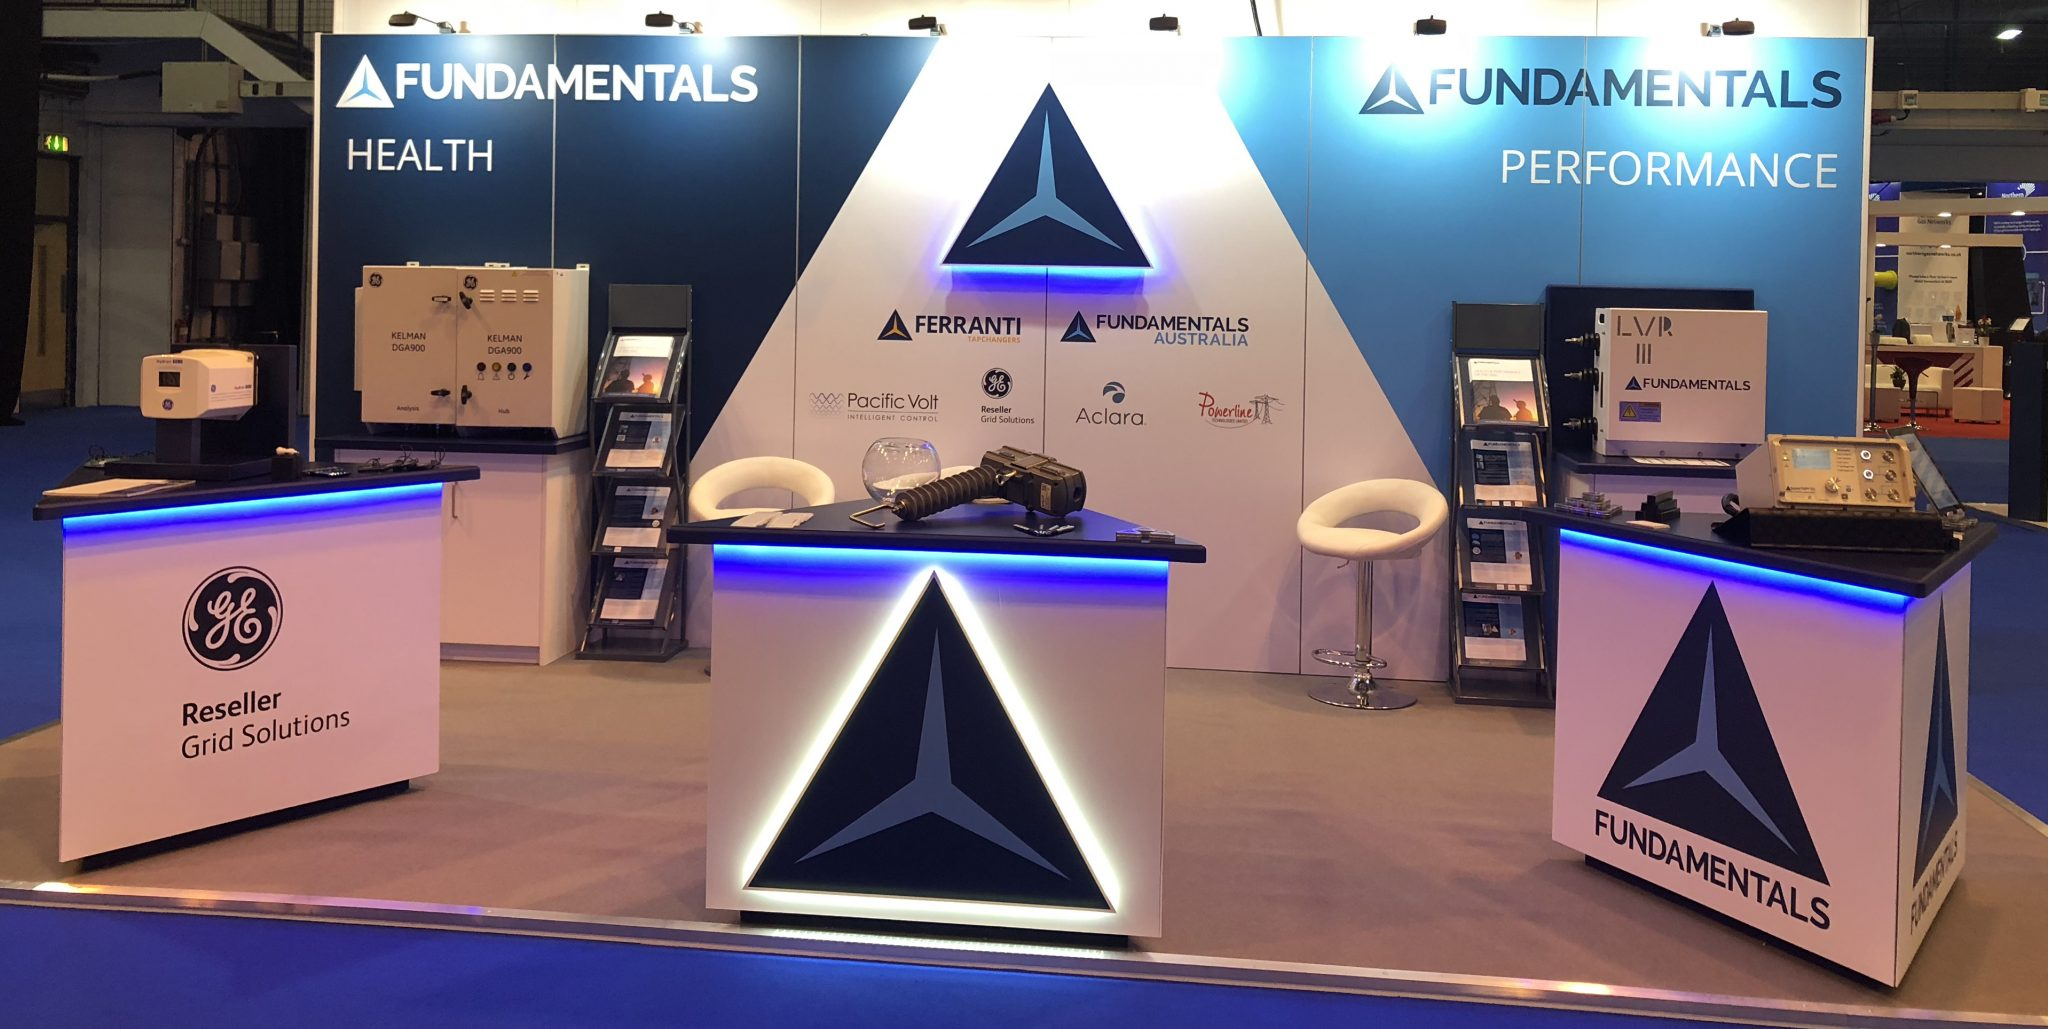 Stand design, stand build, set-up, breakown and team organisation for this indoor conference/ exhibition.